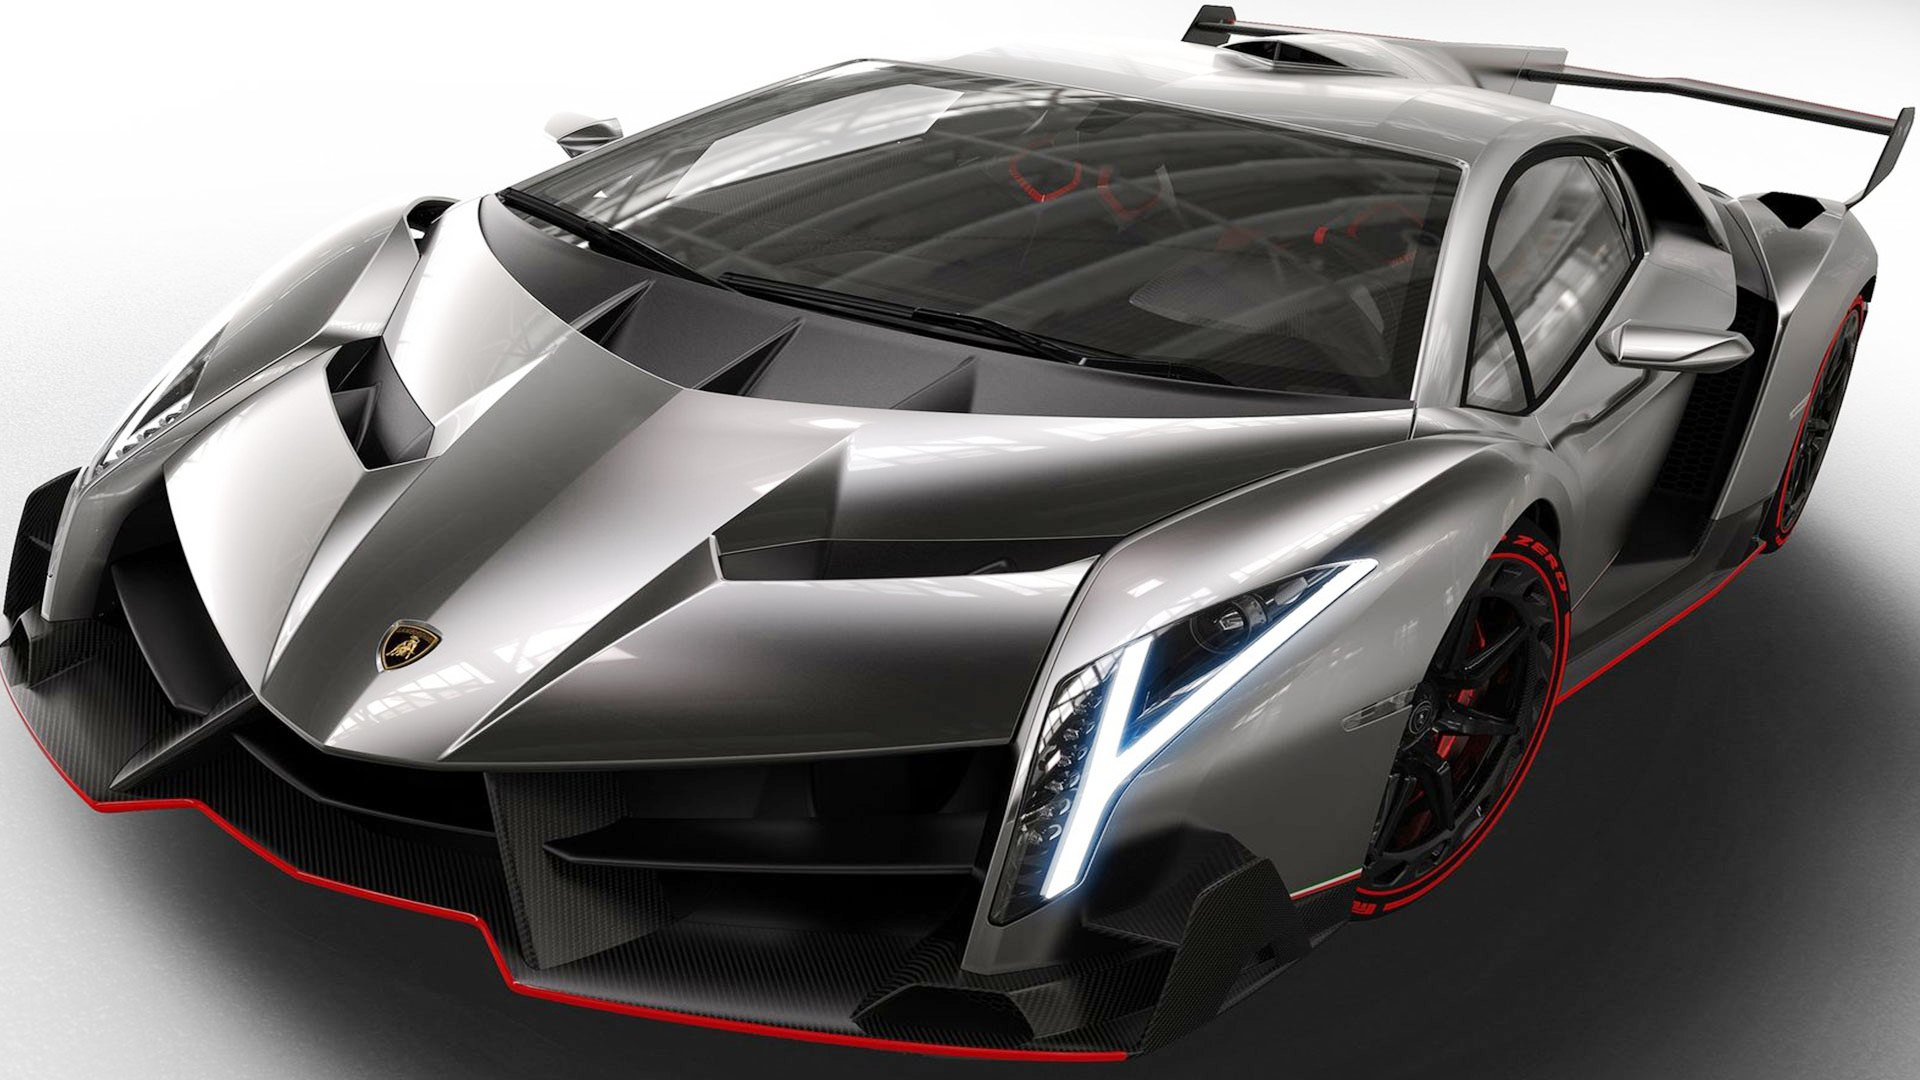 2013 Lamborghini Veneno-Wallpapers